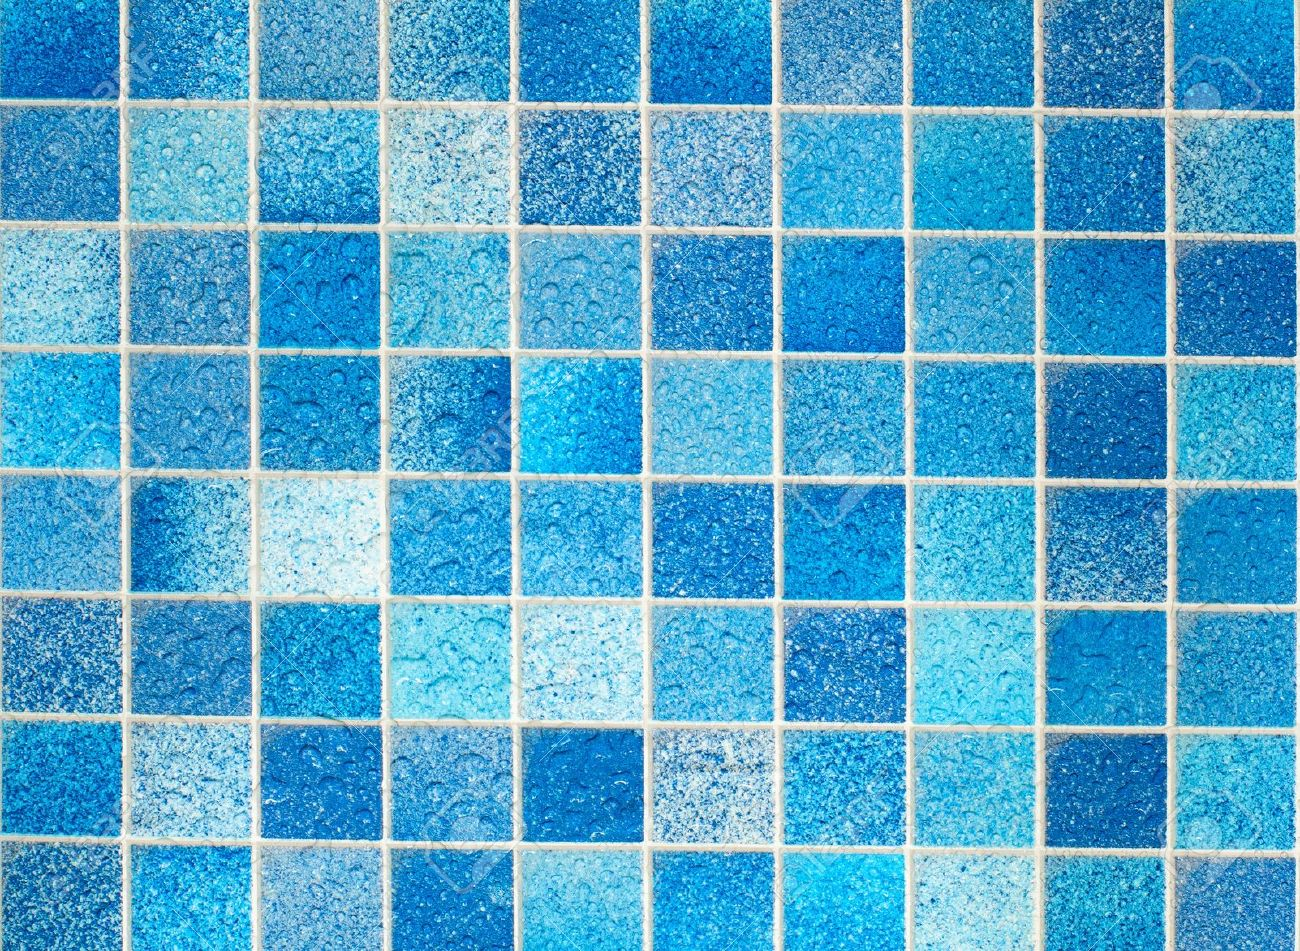 Blue Tiles In Bathroom With Water Drops Photo Picture And – Blue Bathroom Tiles